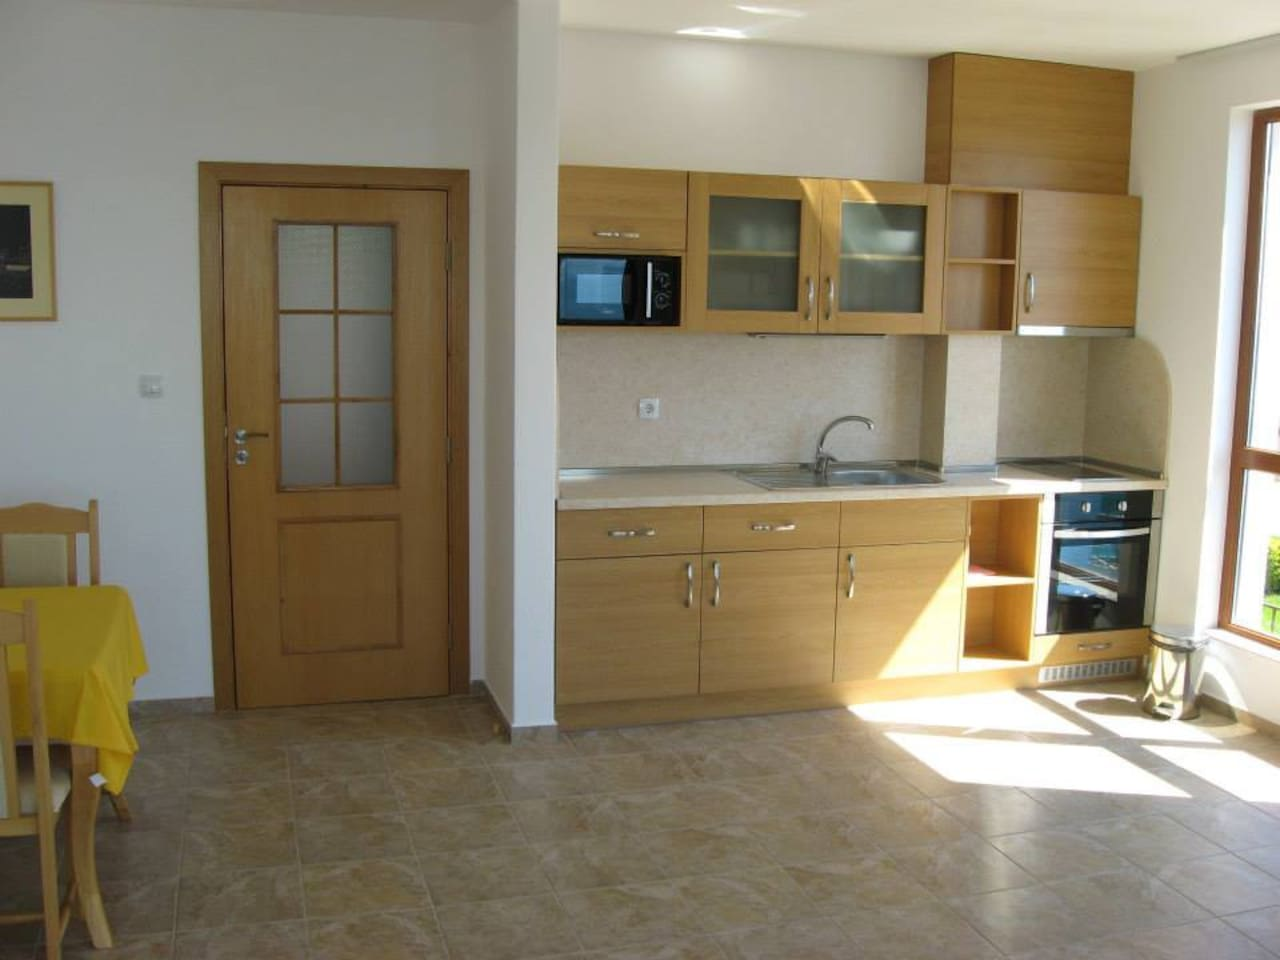 Living room with sea views, a kitchenette and a sofa bed. Kitchen equipped with refrigerator, oven, ceramic cooker, microwave oven and utensils